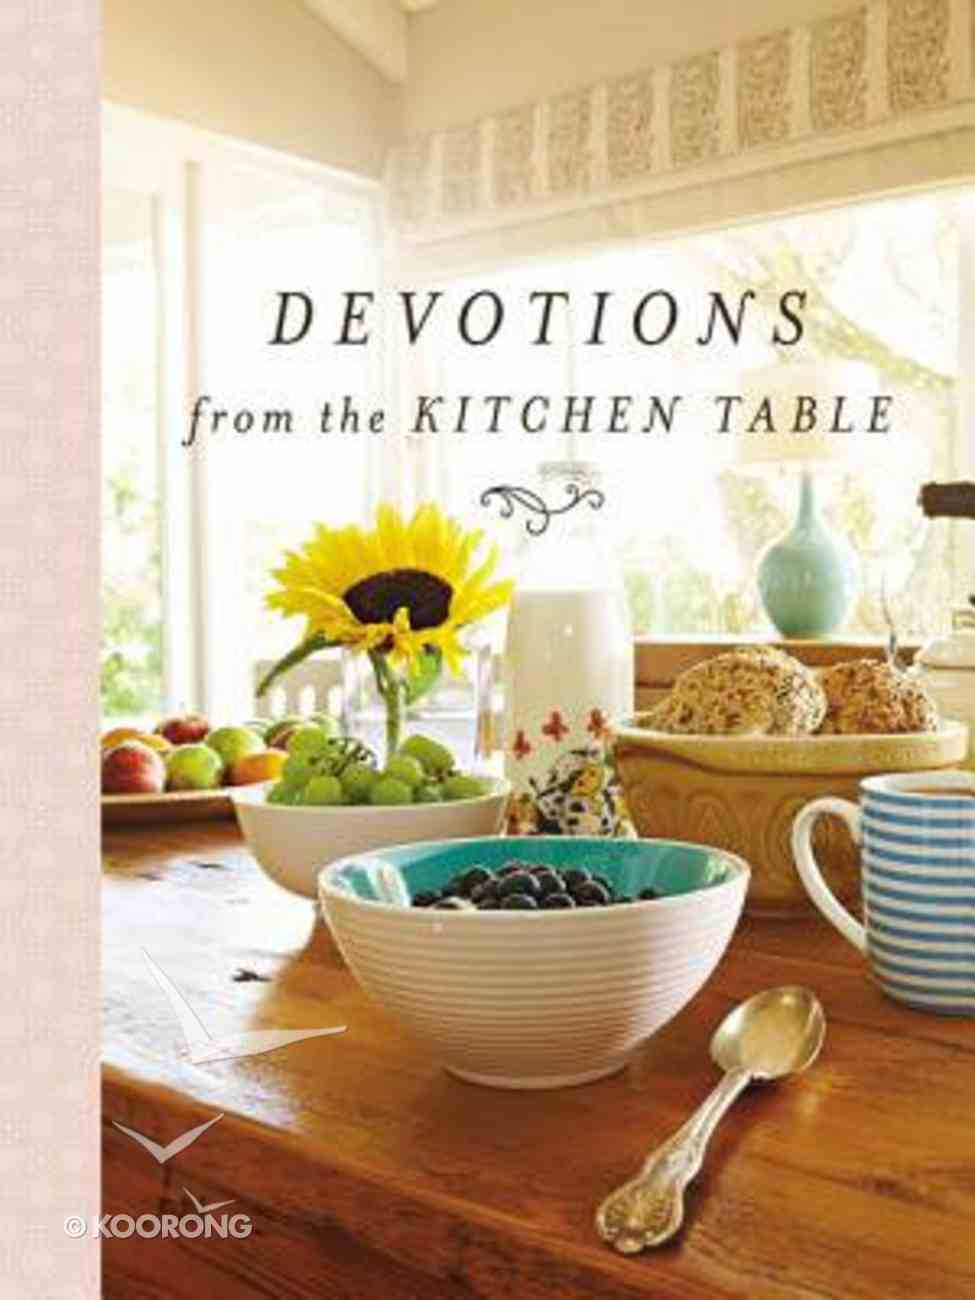 Devotions From the Kitchen Table Hardback